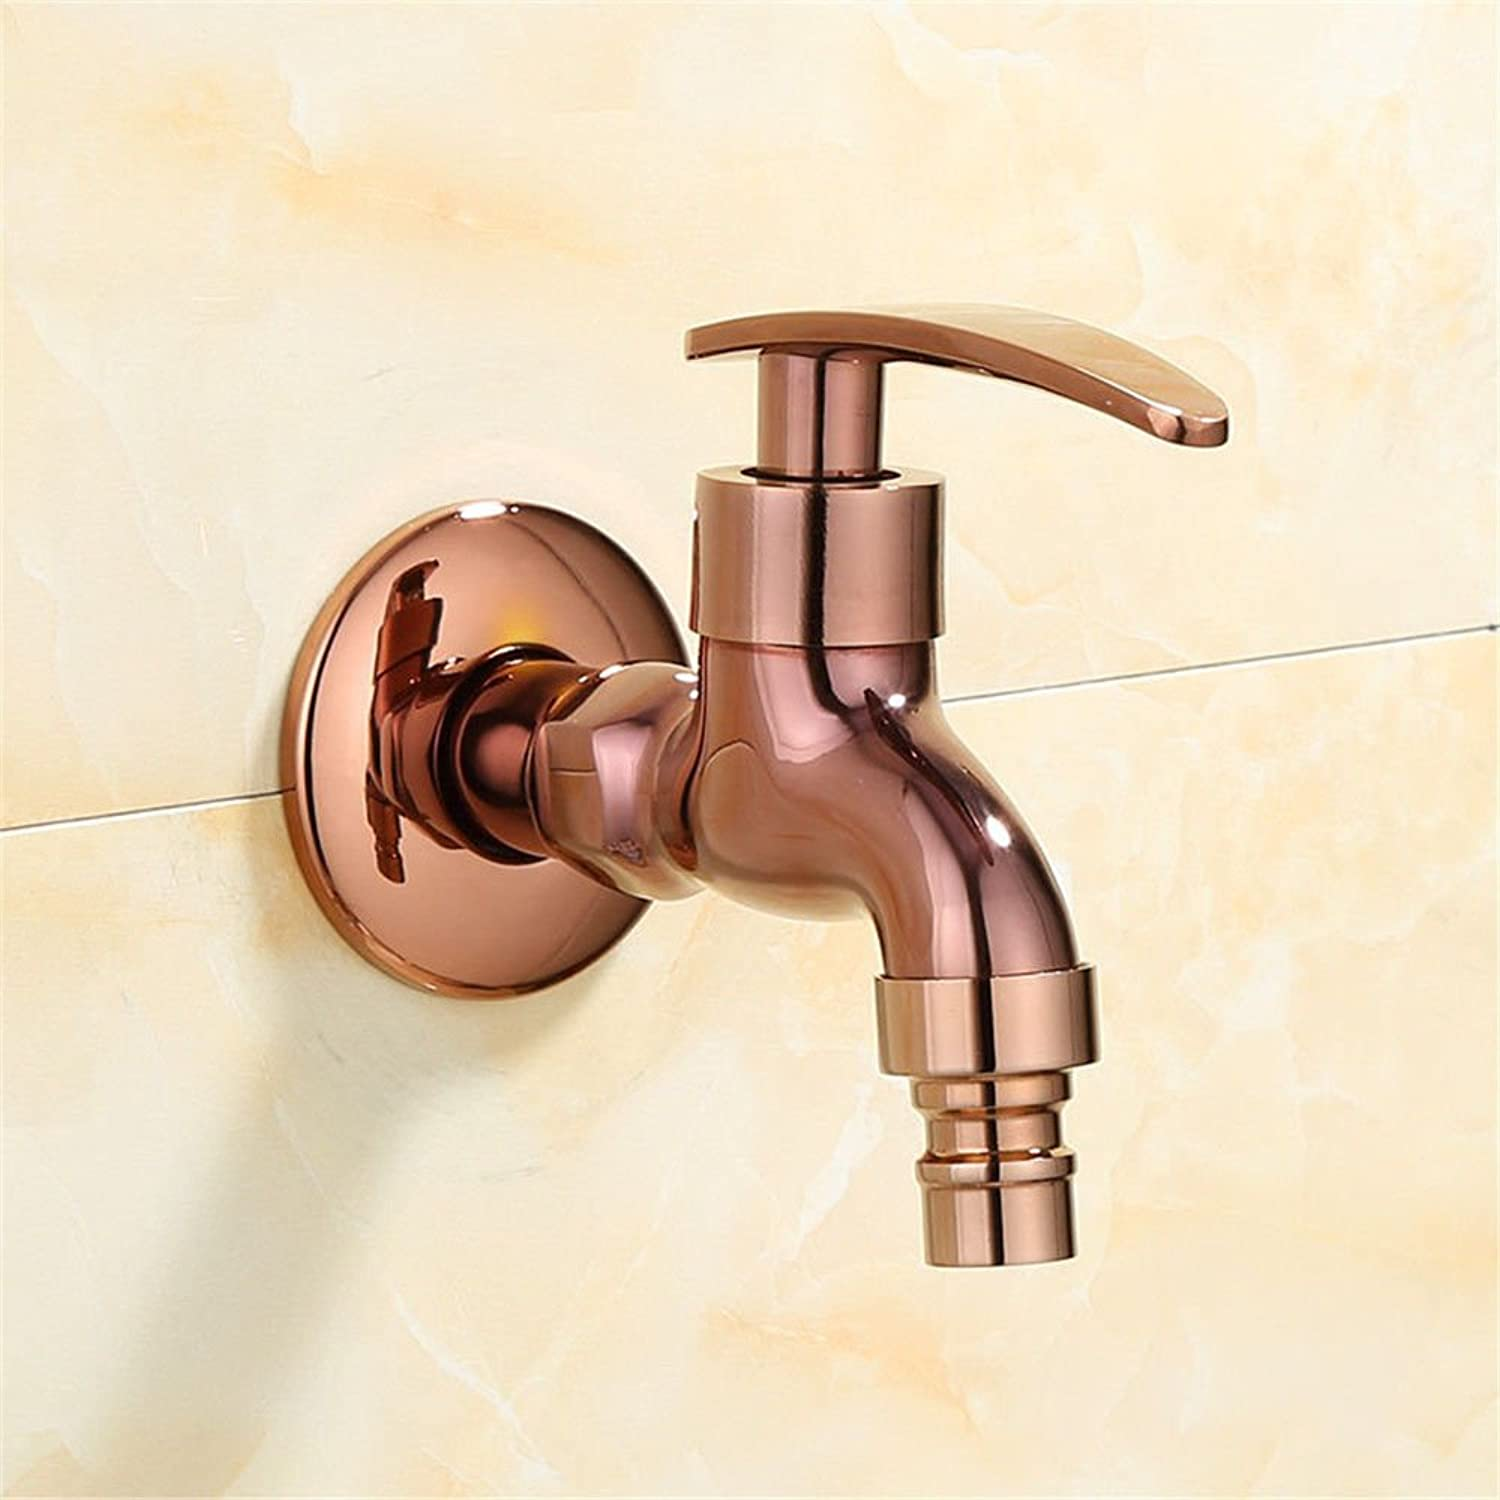 Lpophy Bathroom Sink Mixer Taps Faucet Bath Waterfall Cold and Hot Water Tap for Washroom Bathroom and Kitchen Jade pink gold Copper Fast Water Single Cold A